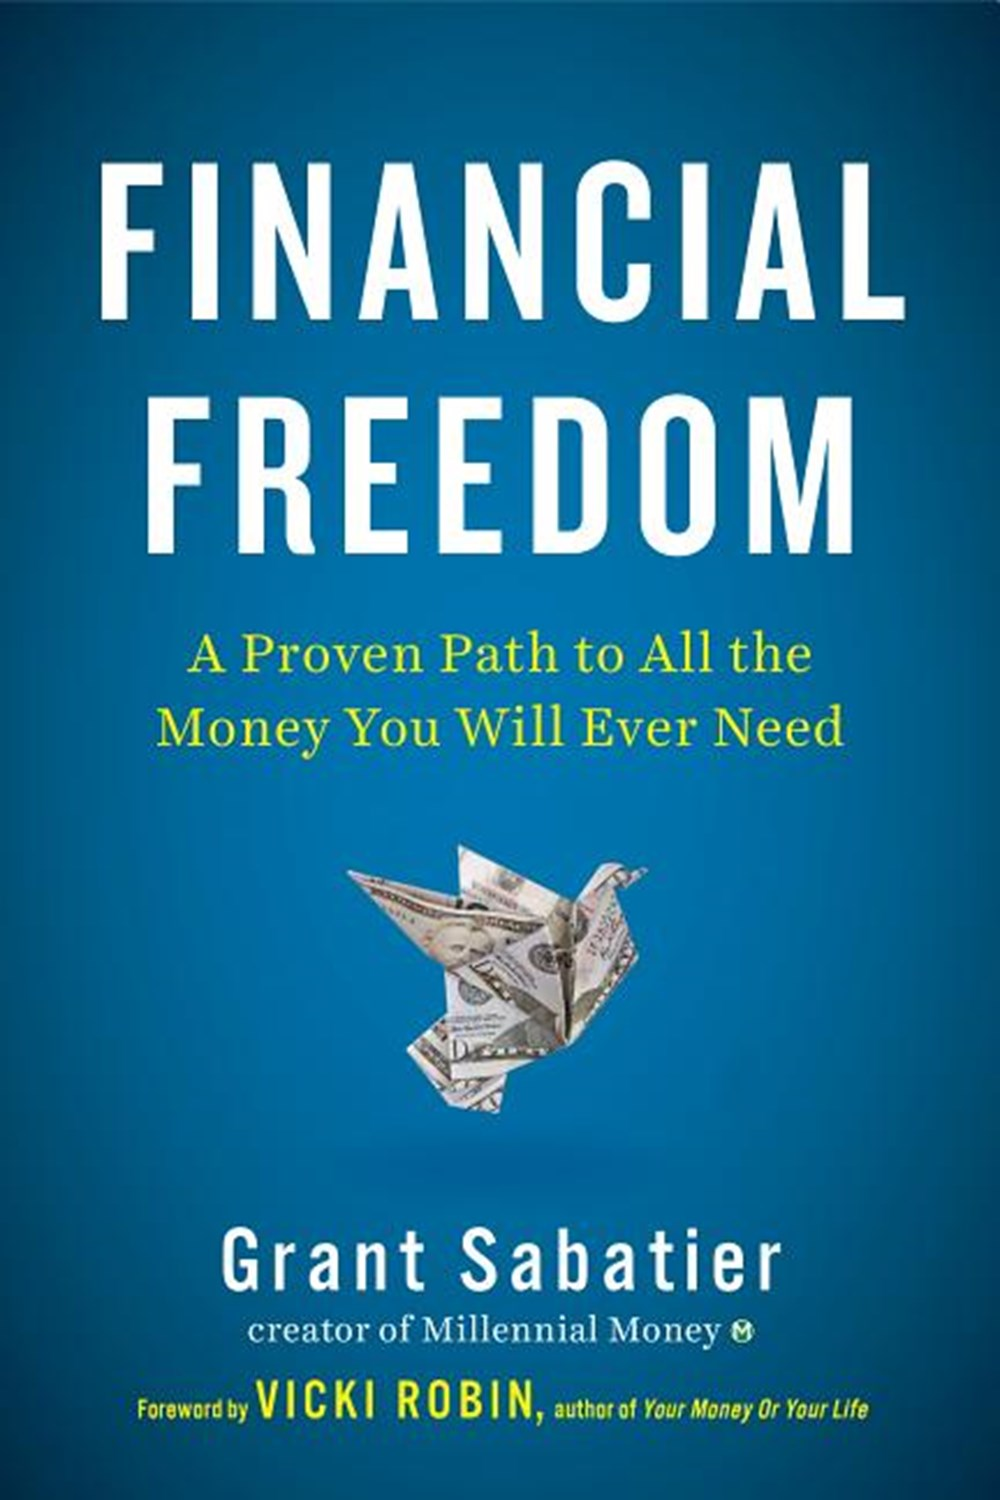 Financial Freedom A Proven Path to All the Money You Will Ever Need